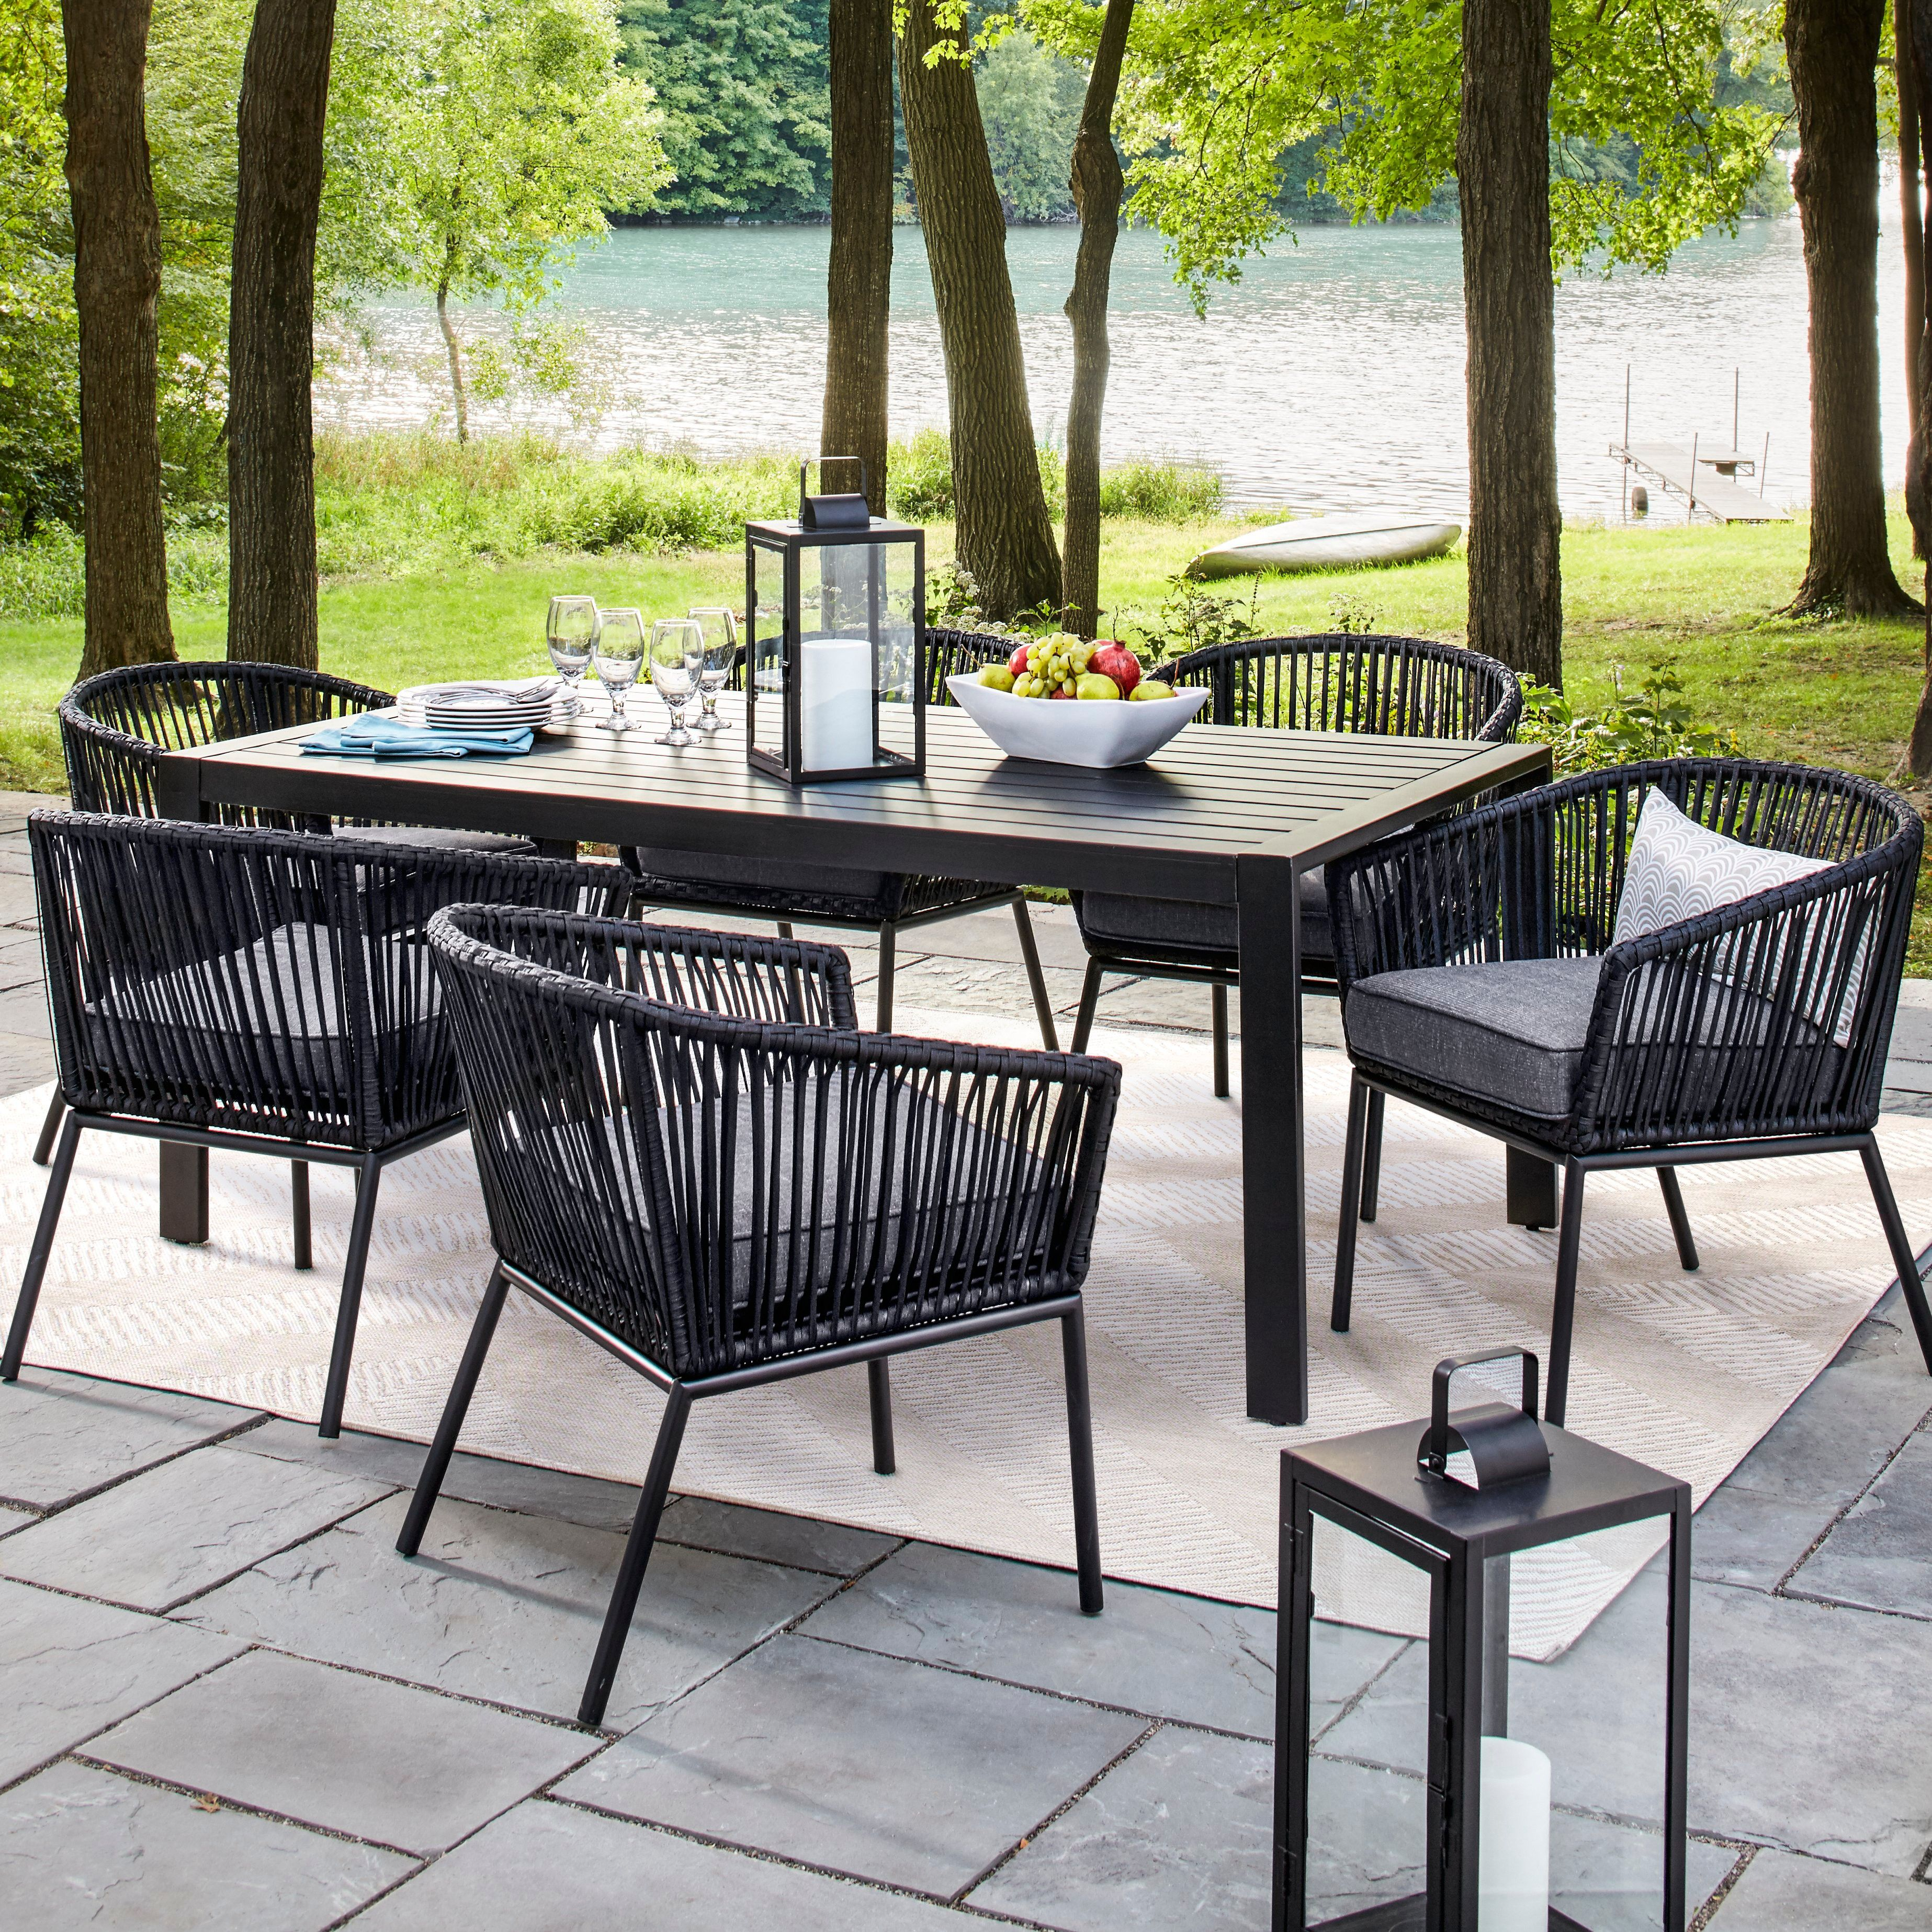 The Standish 7 Piece Strap Patio Dining Set From Threshold